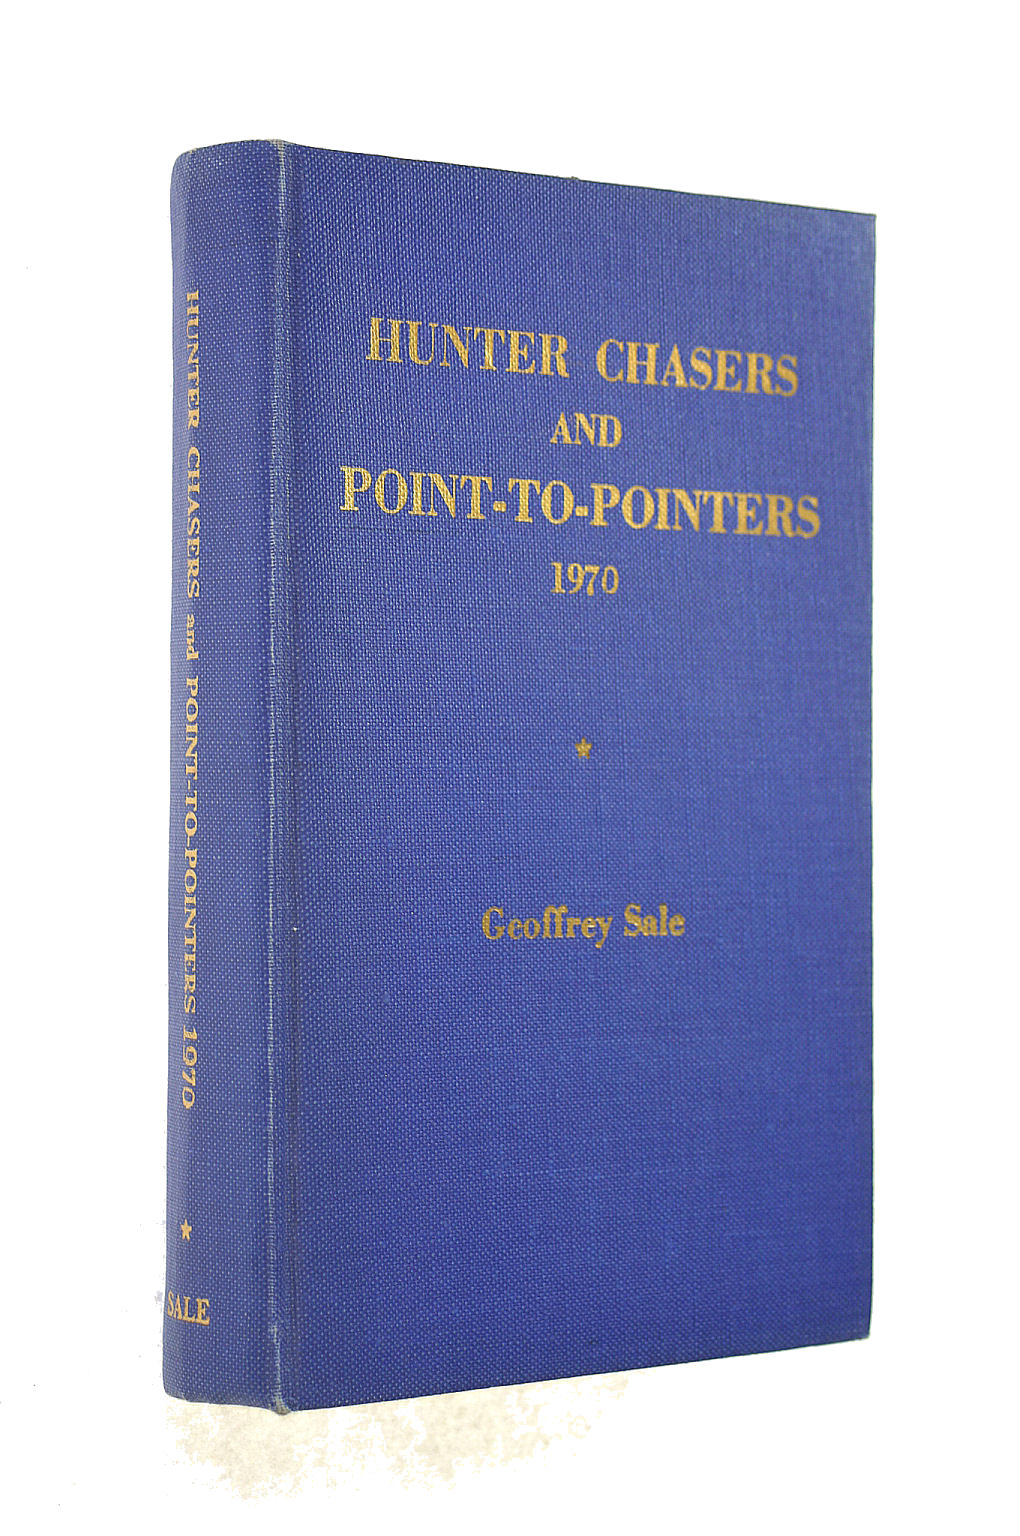 Image for Hunter Chasers And Point-To-Pointers 1970